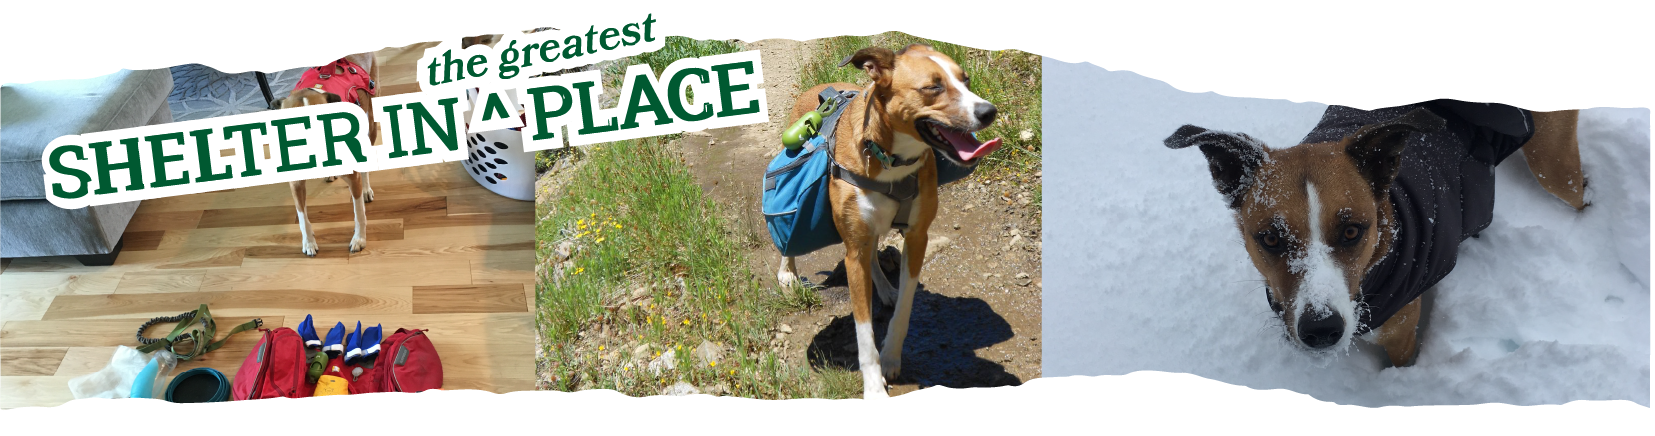 Title Text: Shelter in the Greatest Place laid over a triplicate image of a cute dog on several backpacking trips.